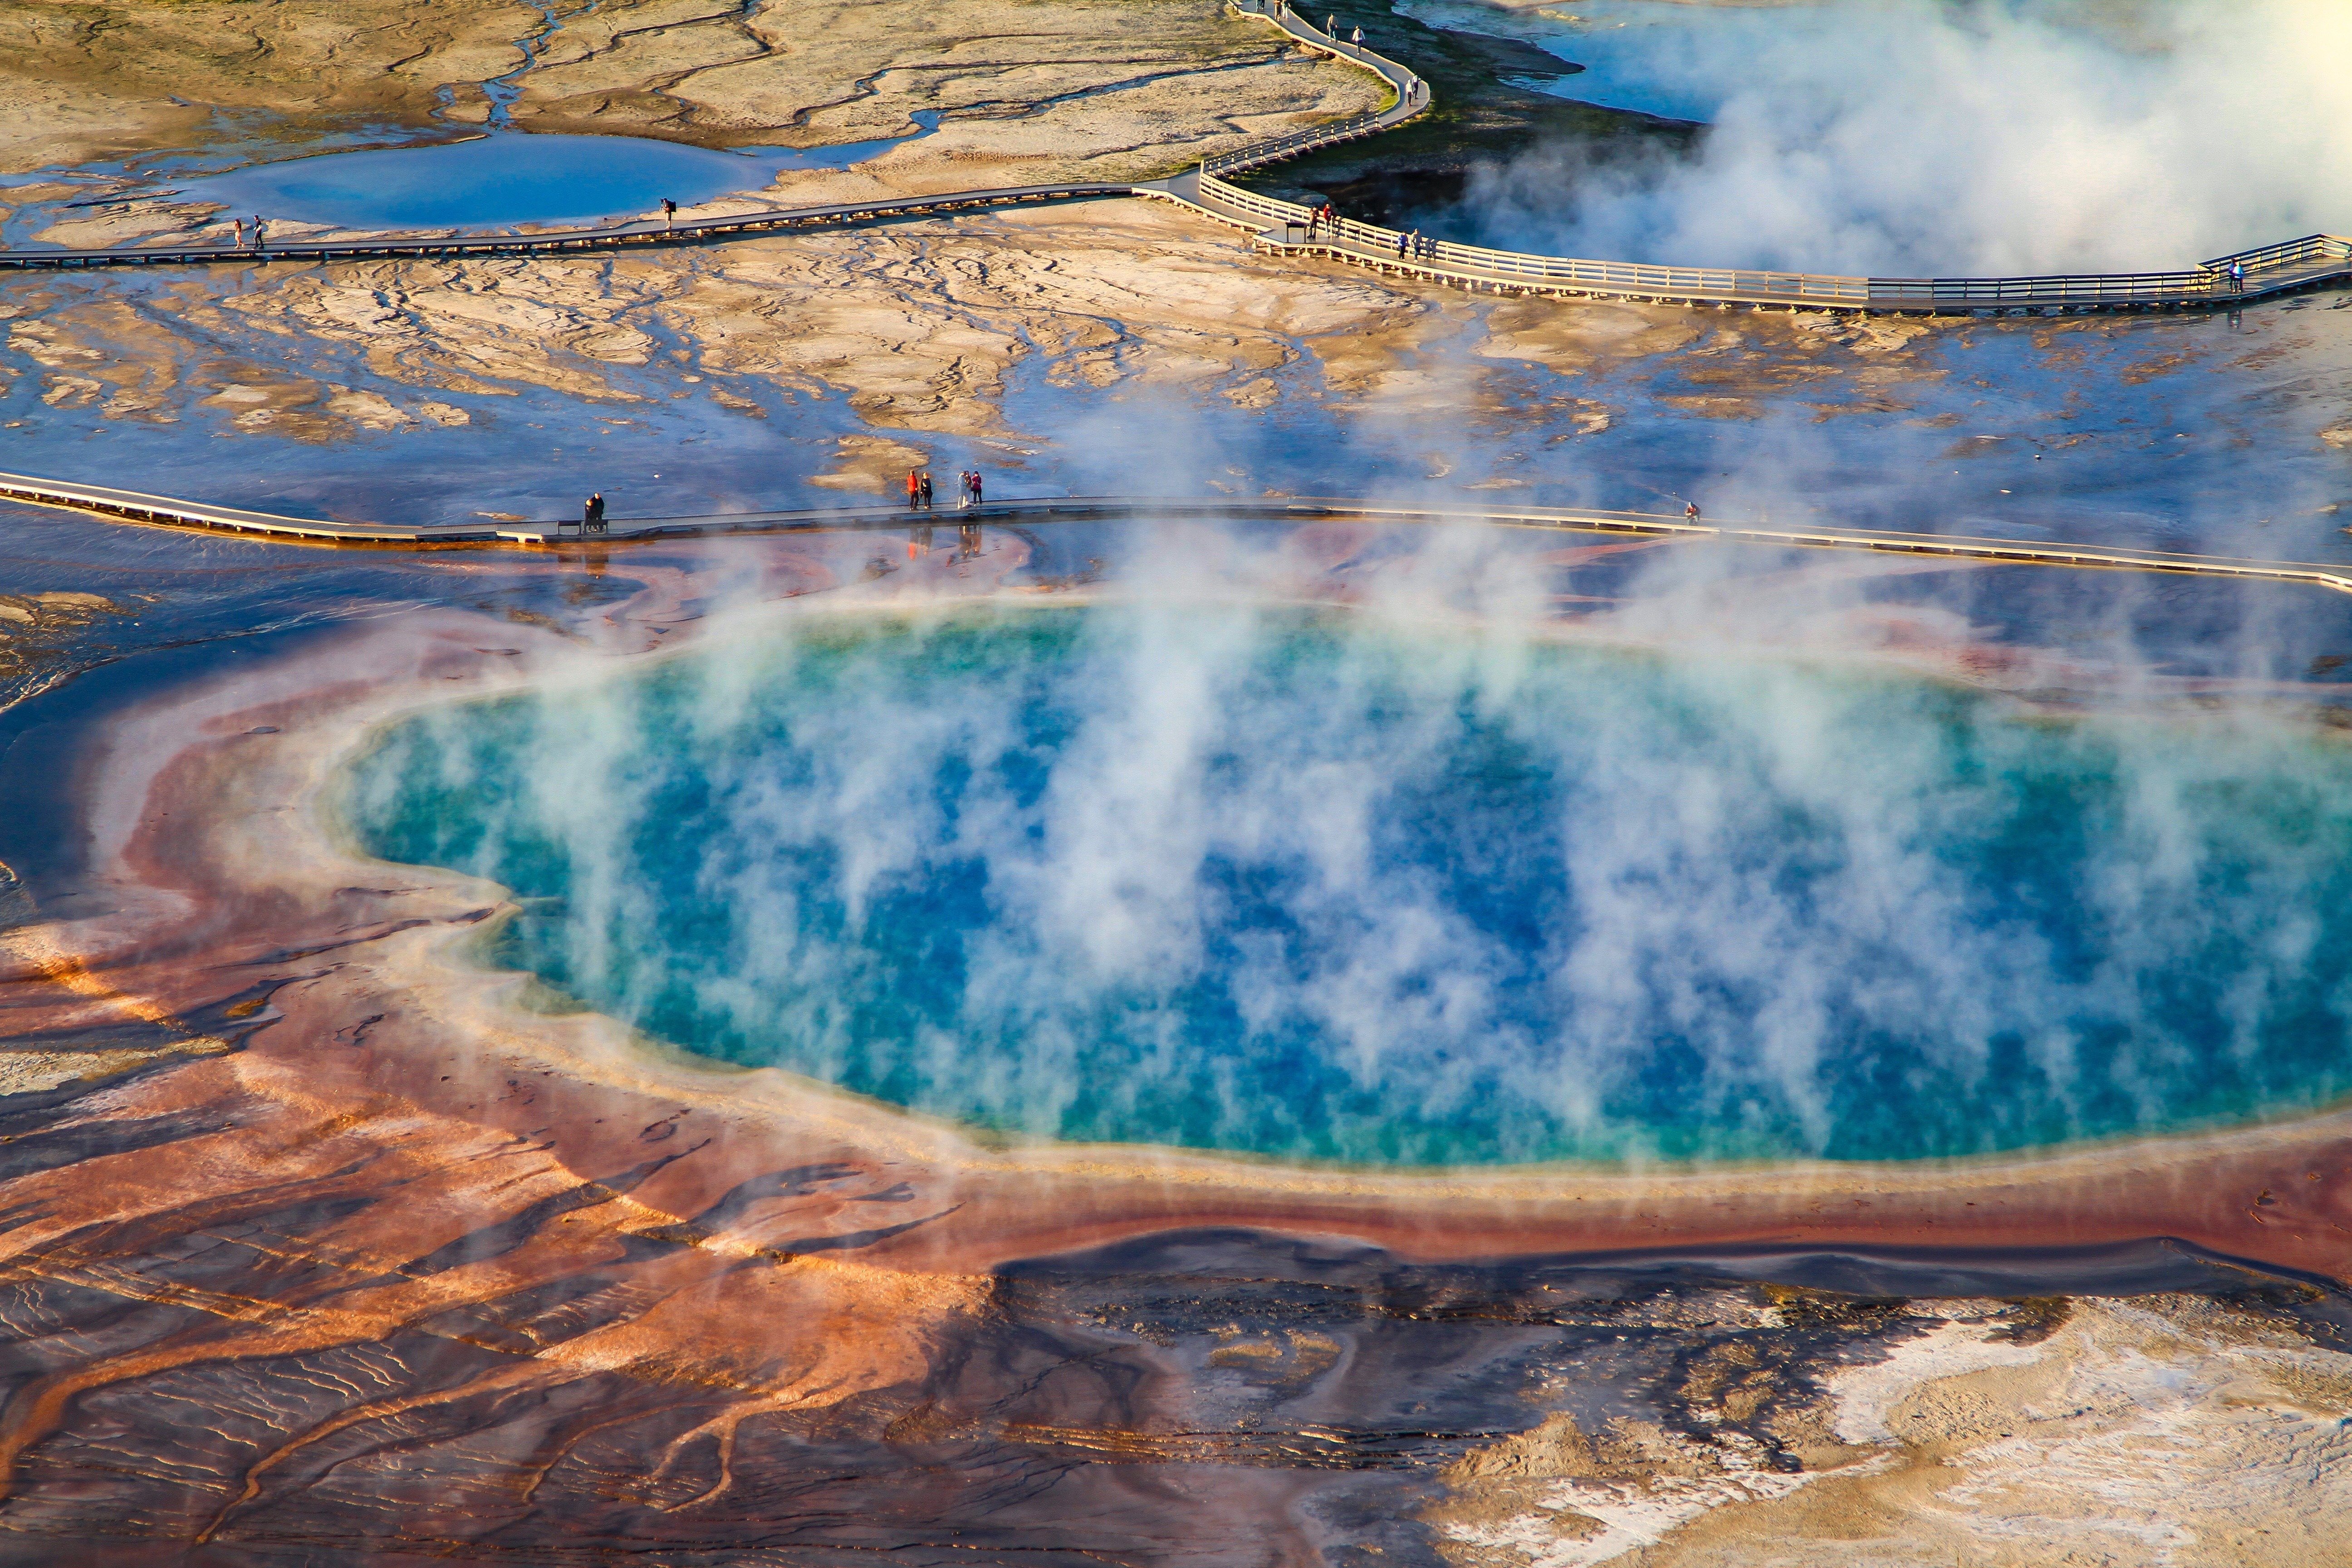 Free download high resolution image - free image free photo free stock image public domain picture -Großartiger prismatischer Frühling, Yellowstone Nationalpark